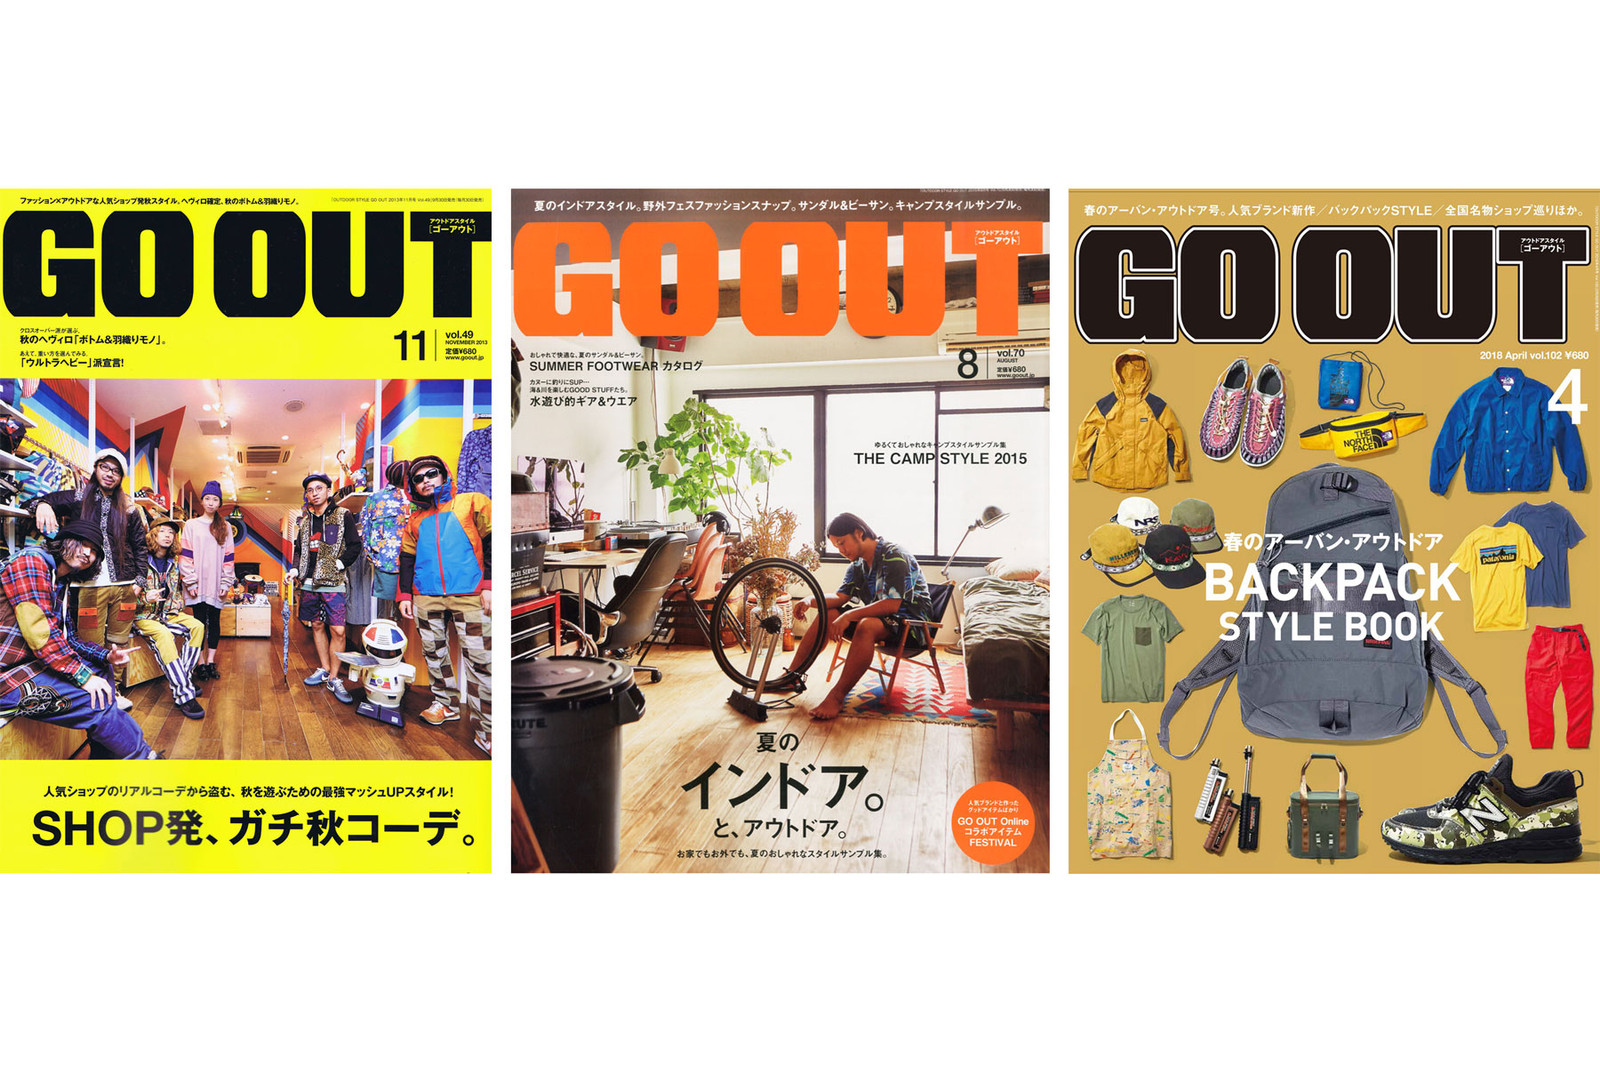 Outdoor Style & Adventure as Japanese Subculture